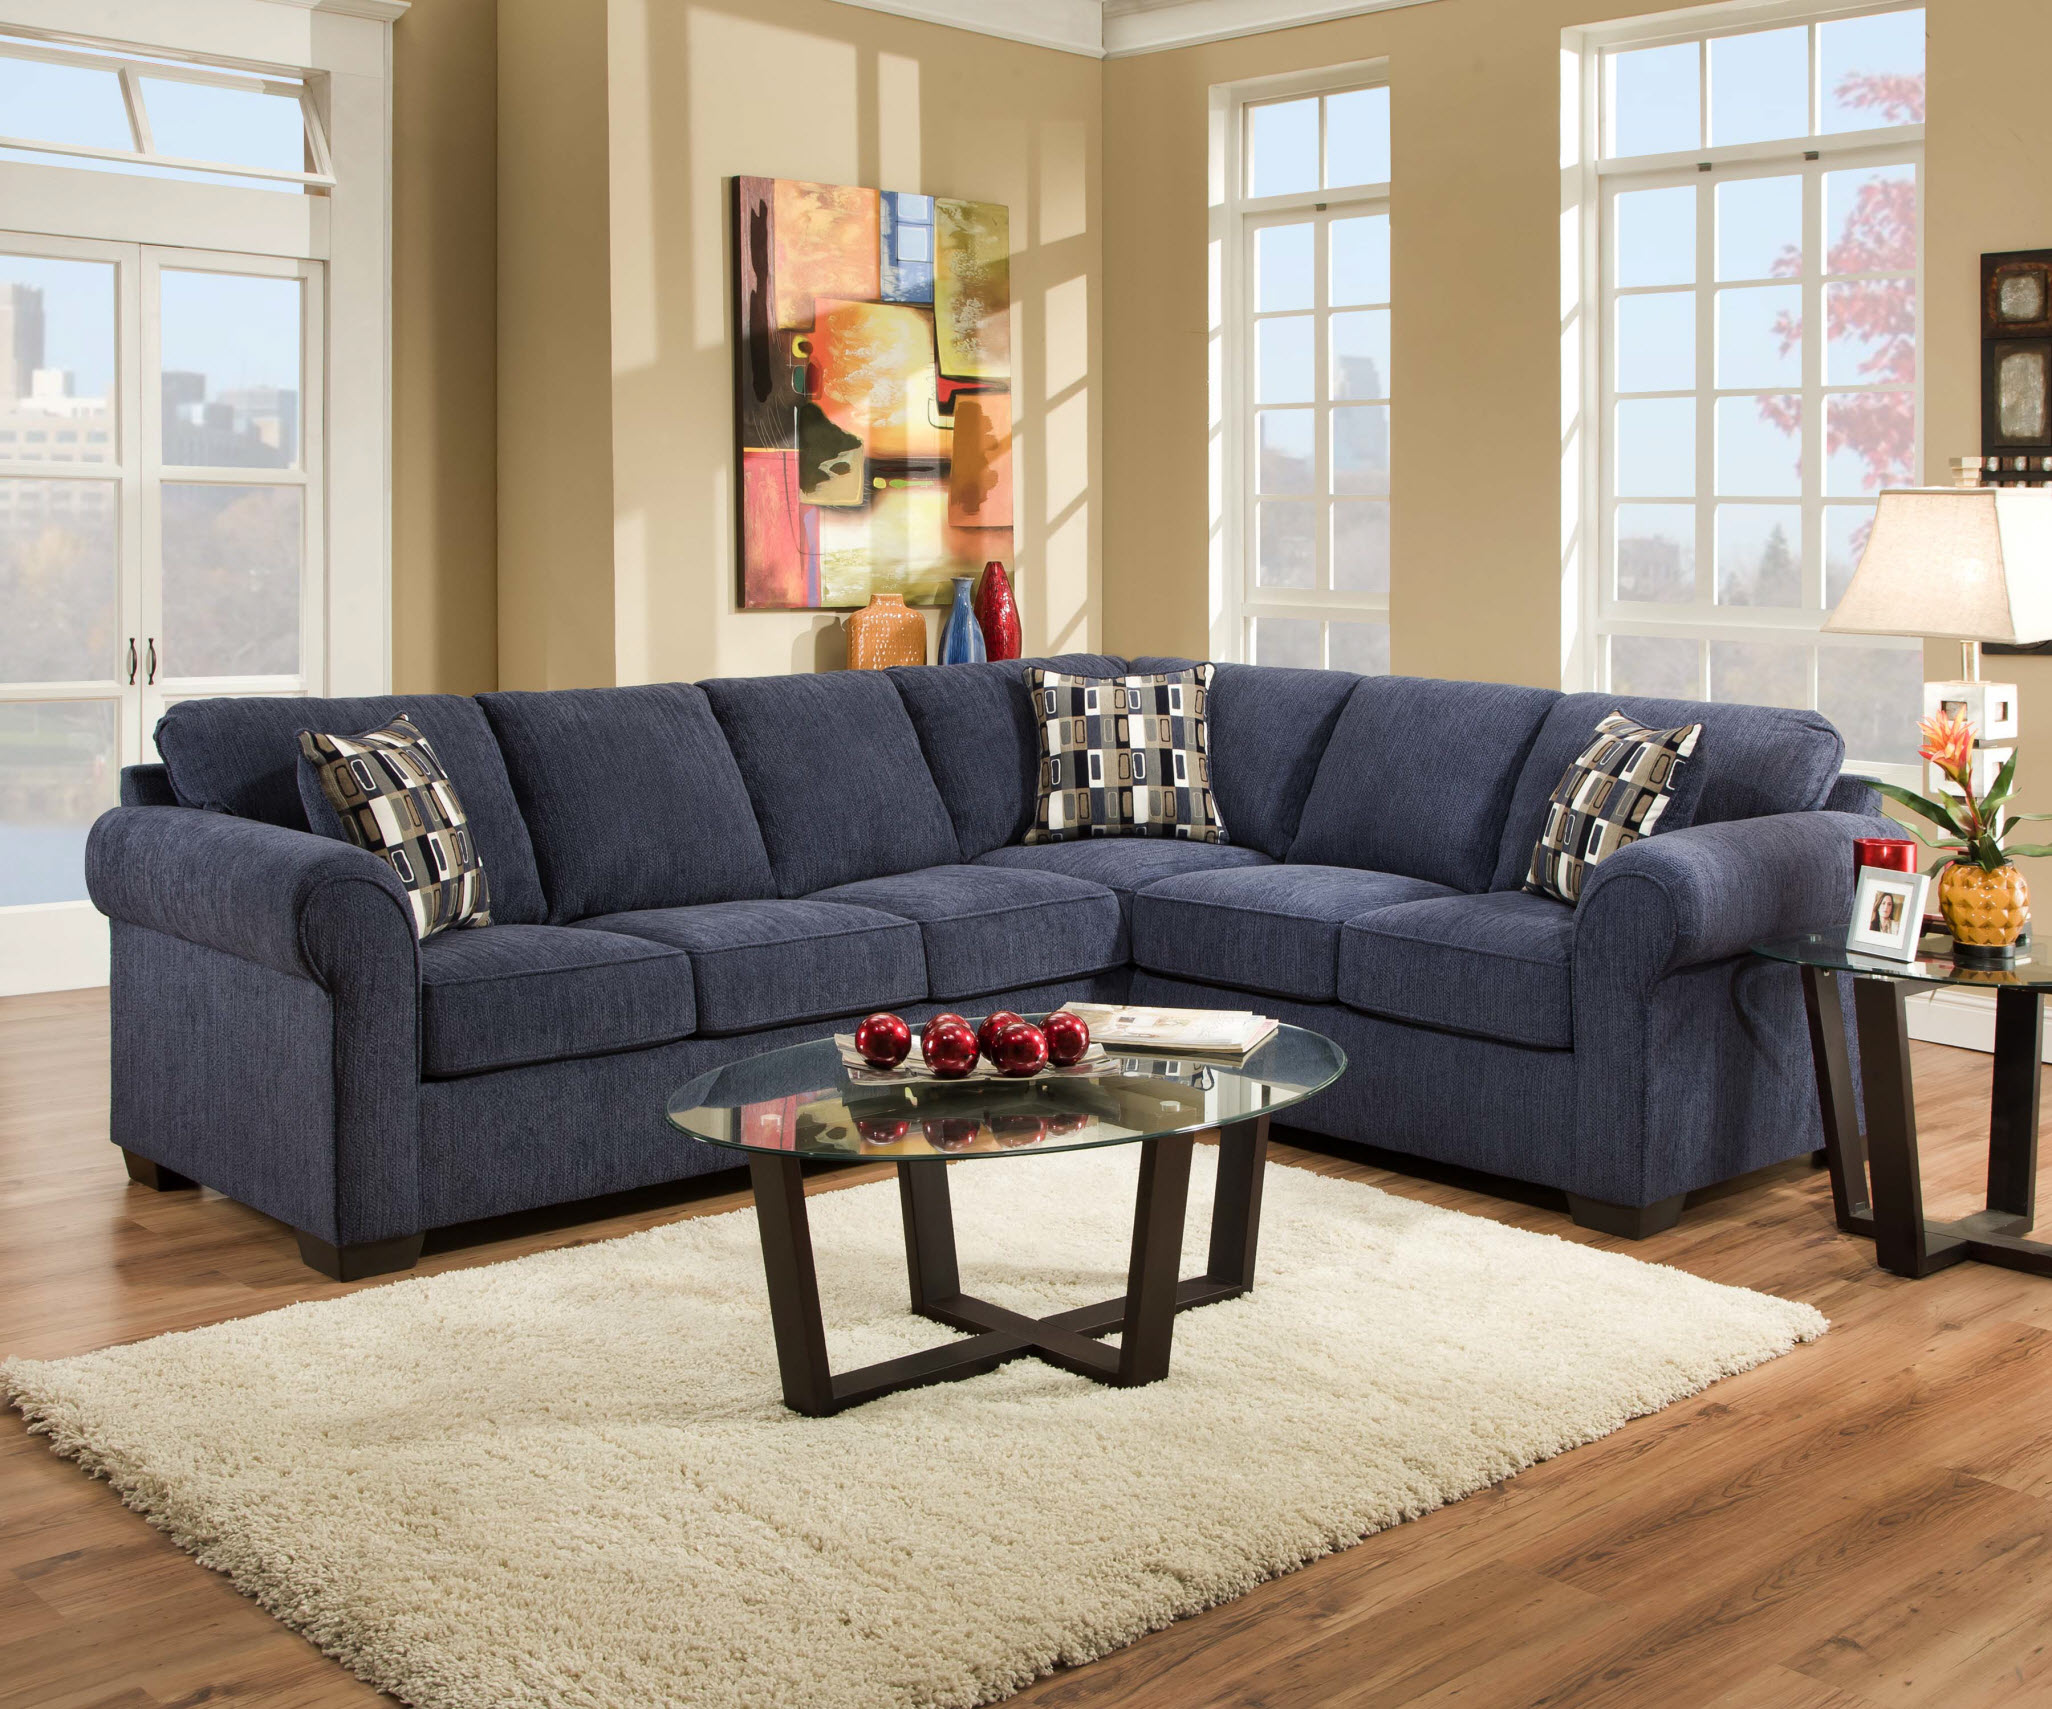 Sectional Sofa Sleepers for Better Sleep Quality and fort